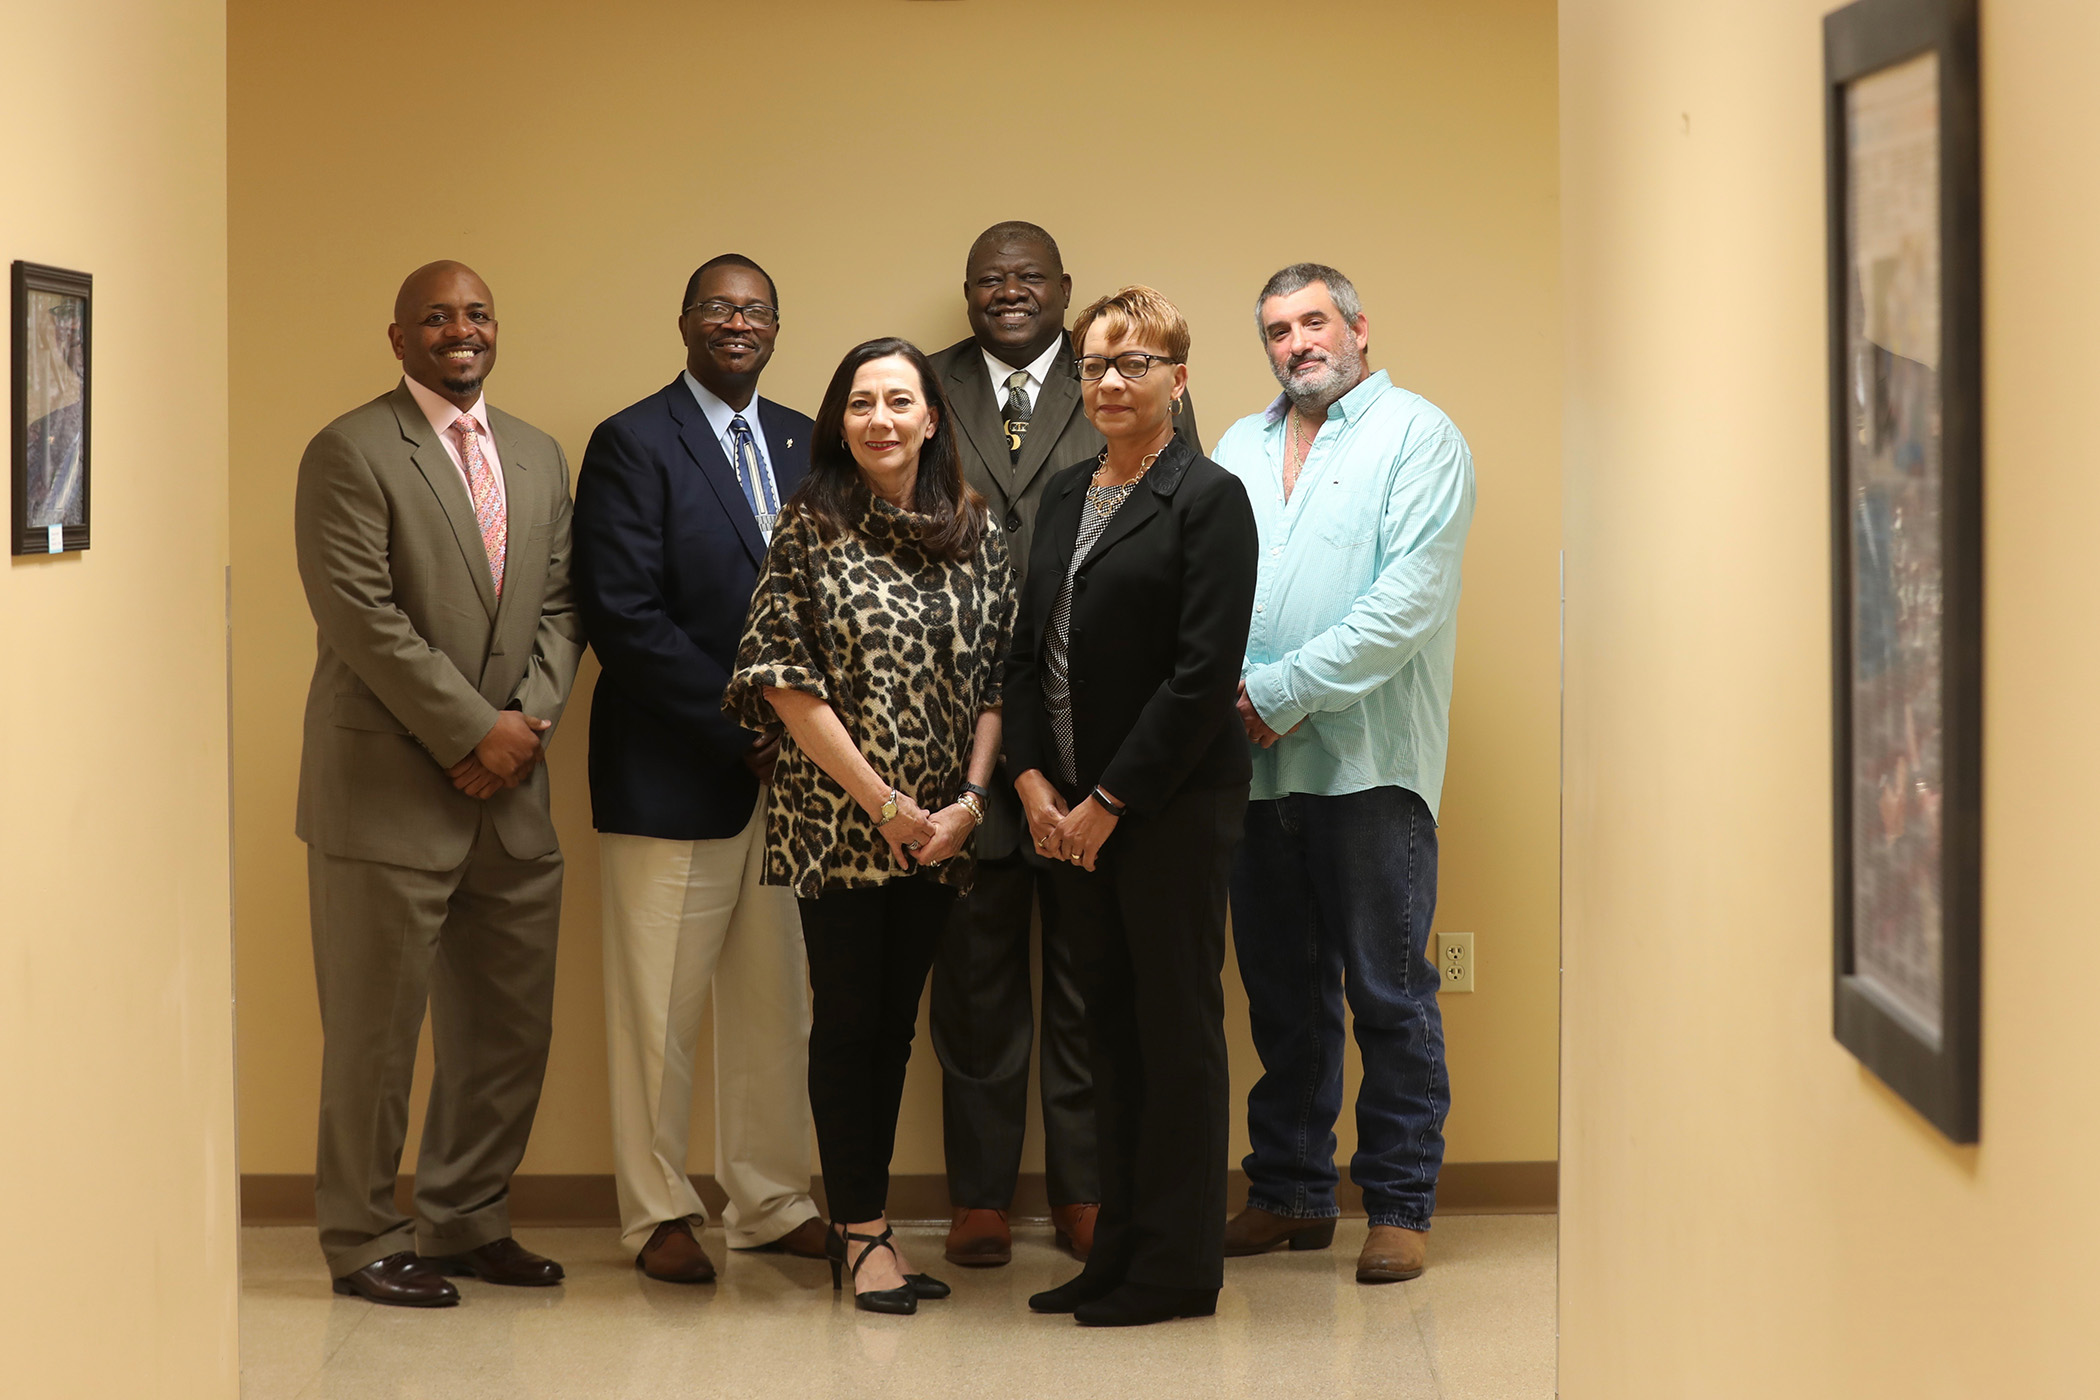 QSD school board members pose for a photo.